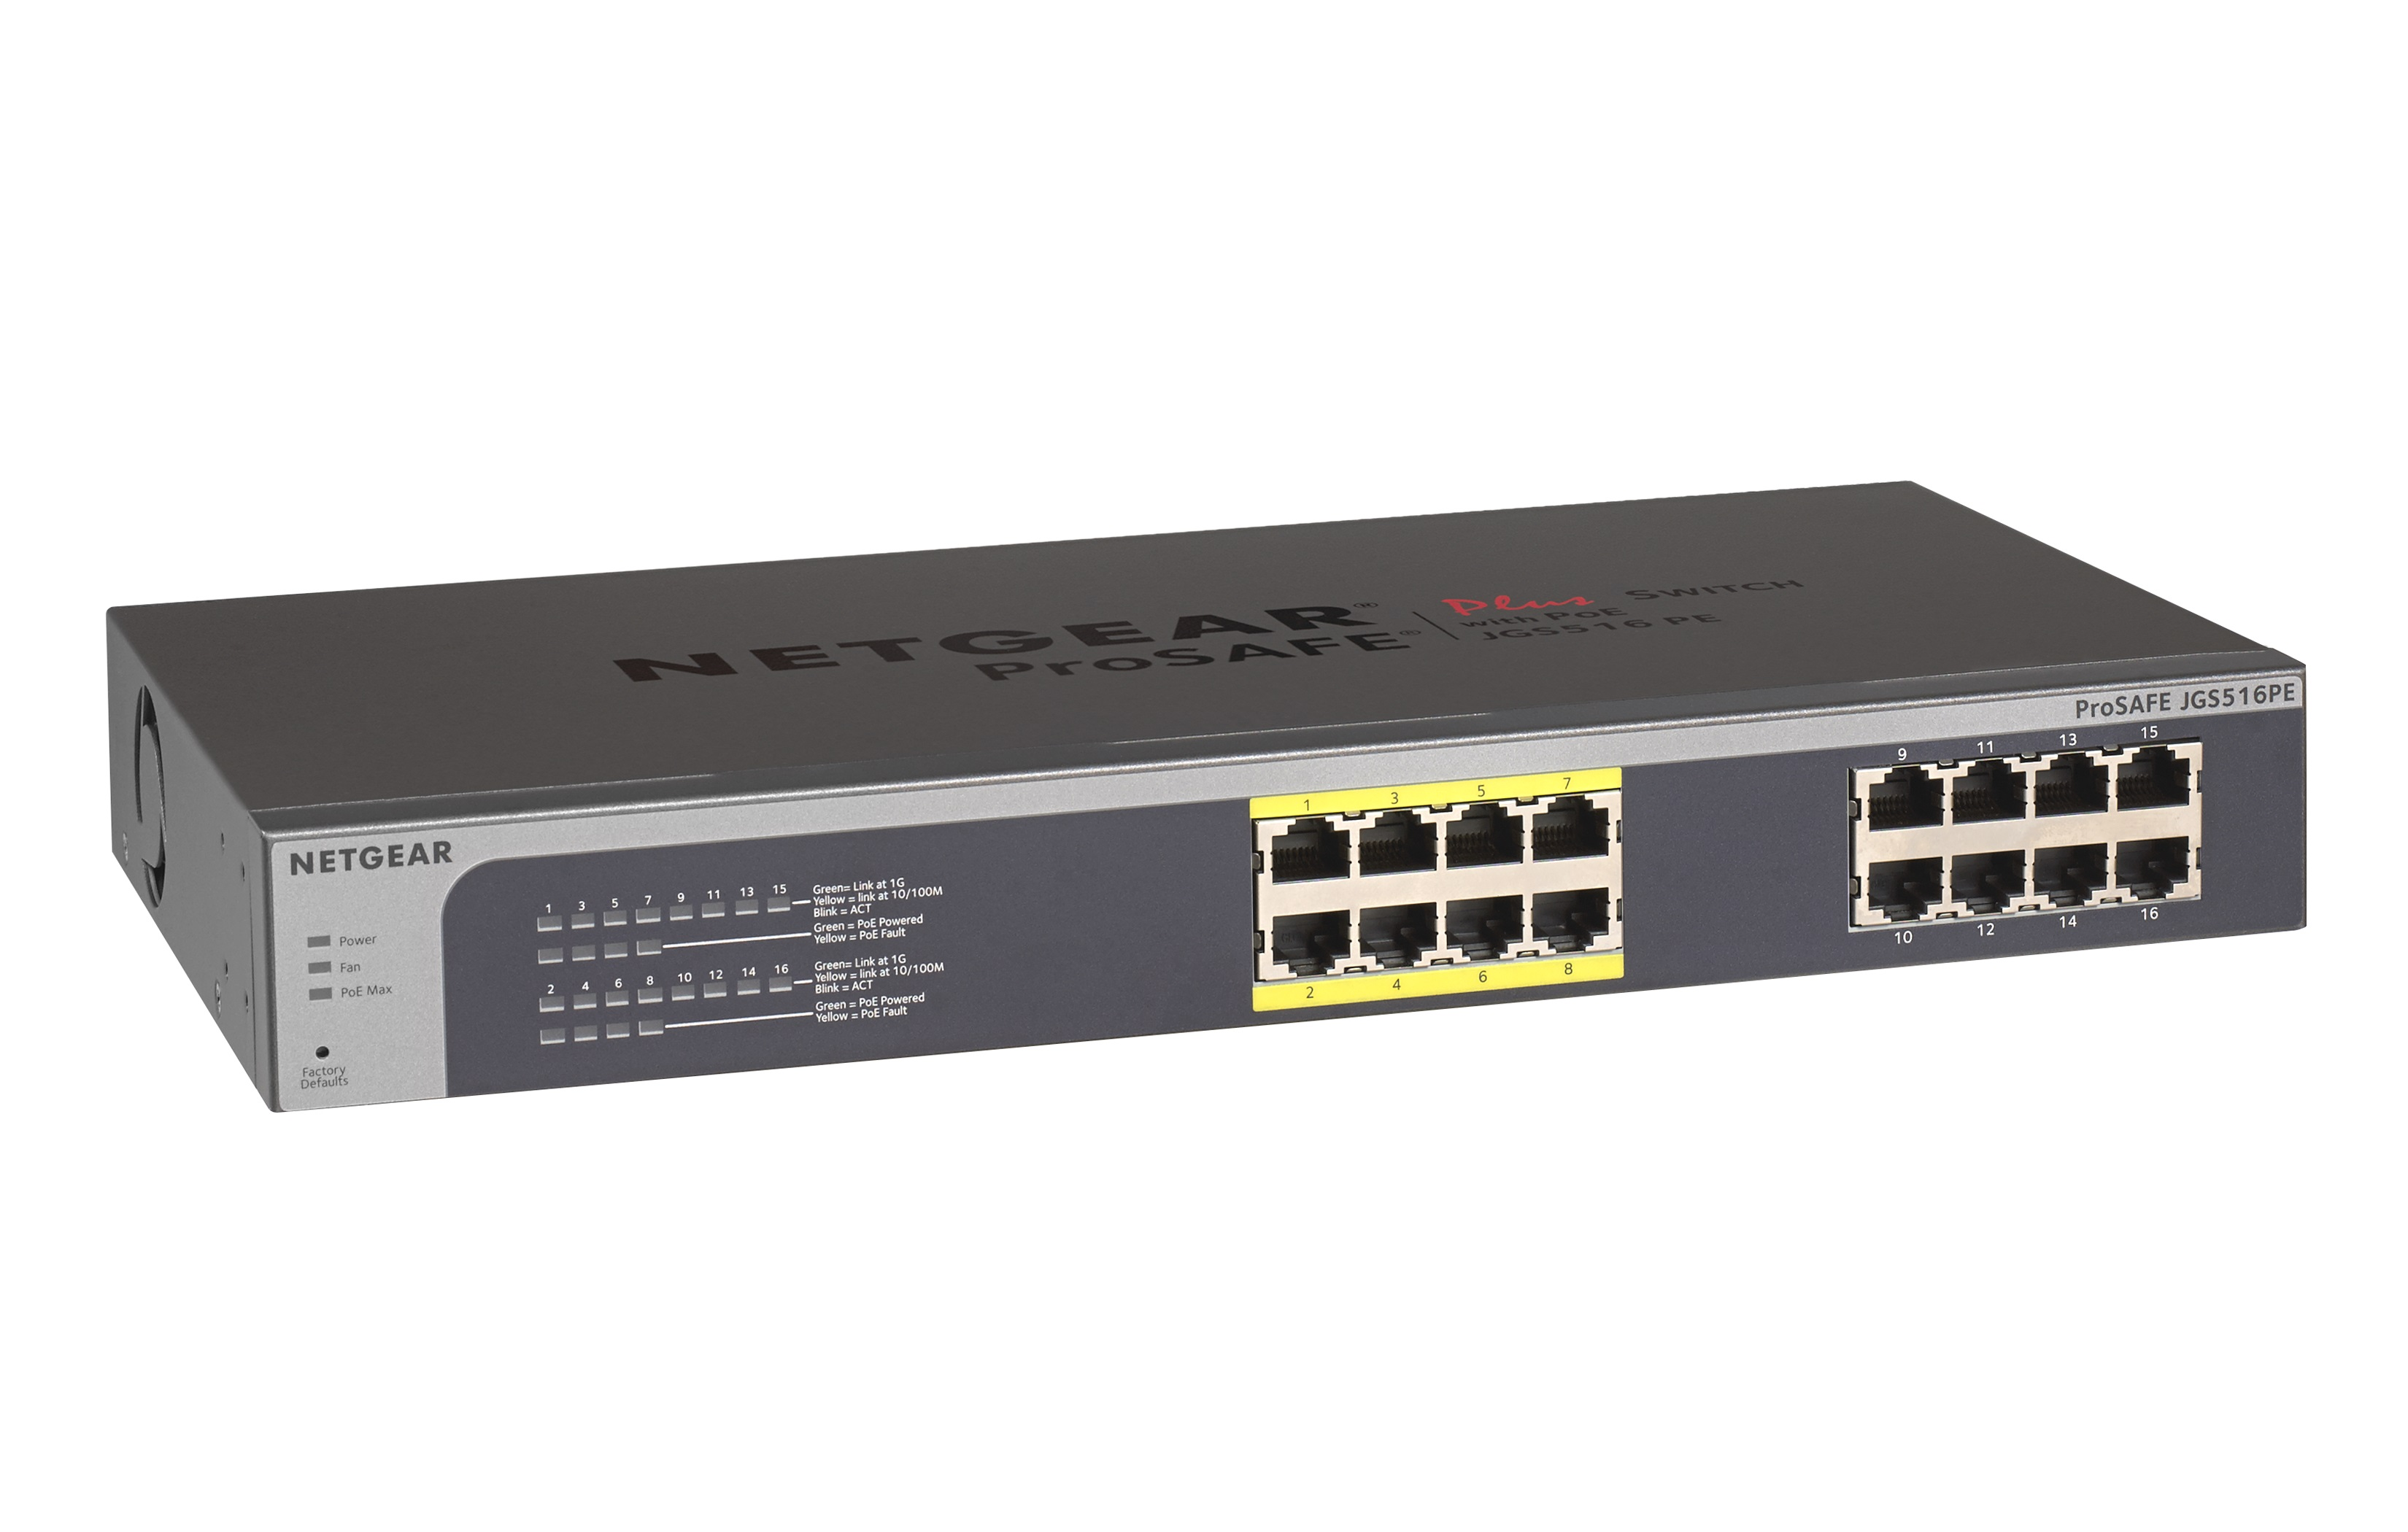 NETGEAR ProSAFE Plus 16 ports switch with PoE, Rack-mount, JGS516PE - PROMO